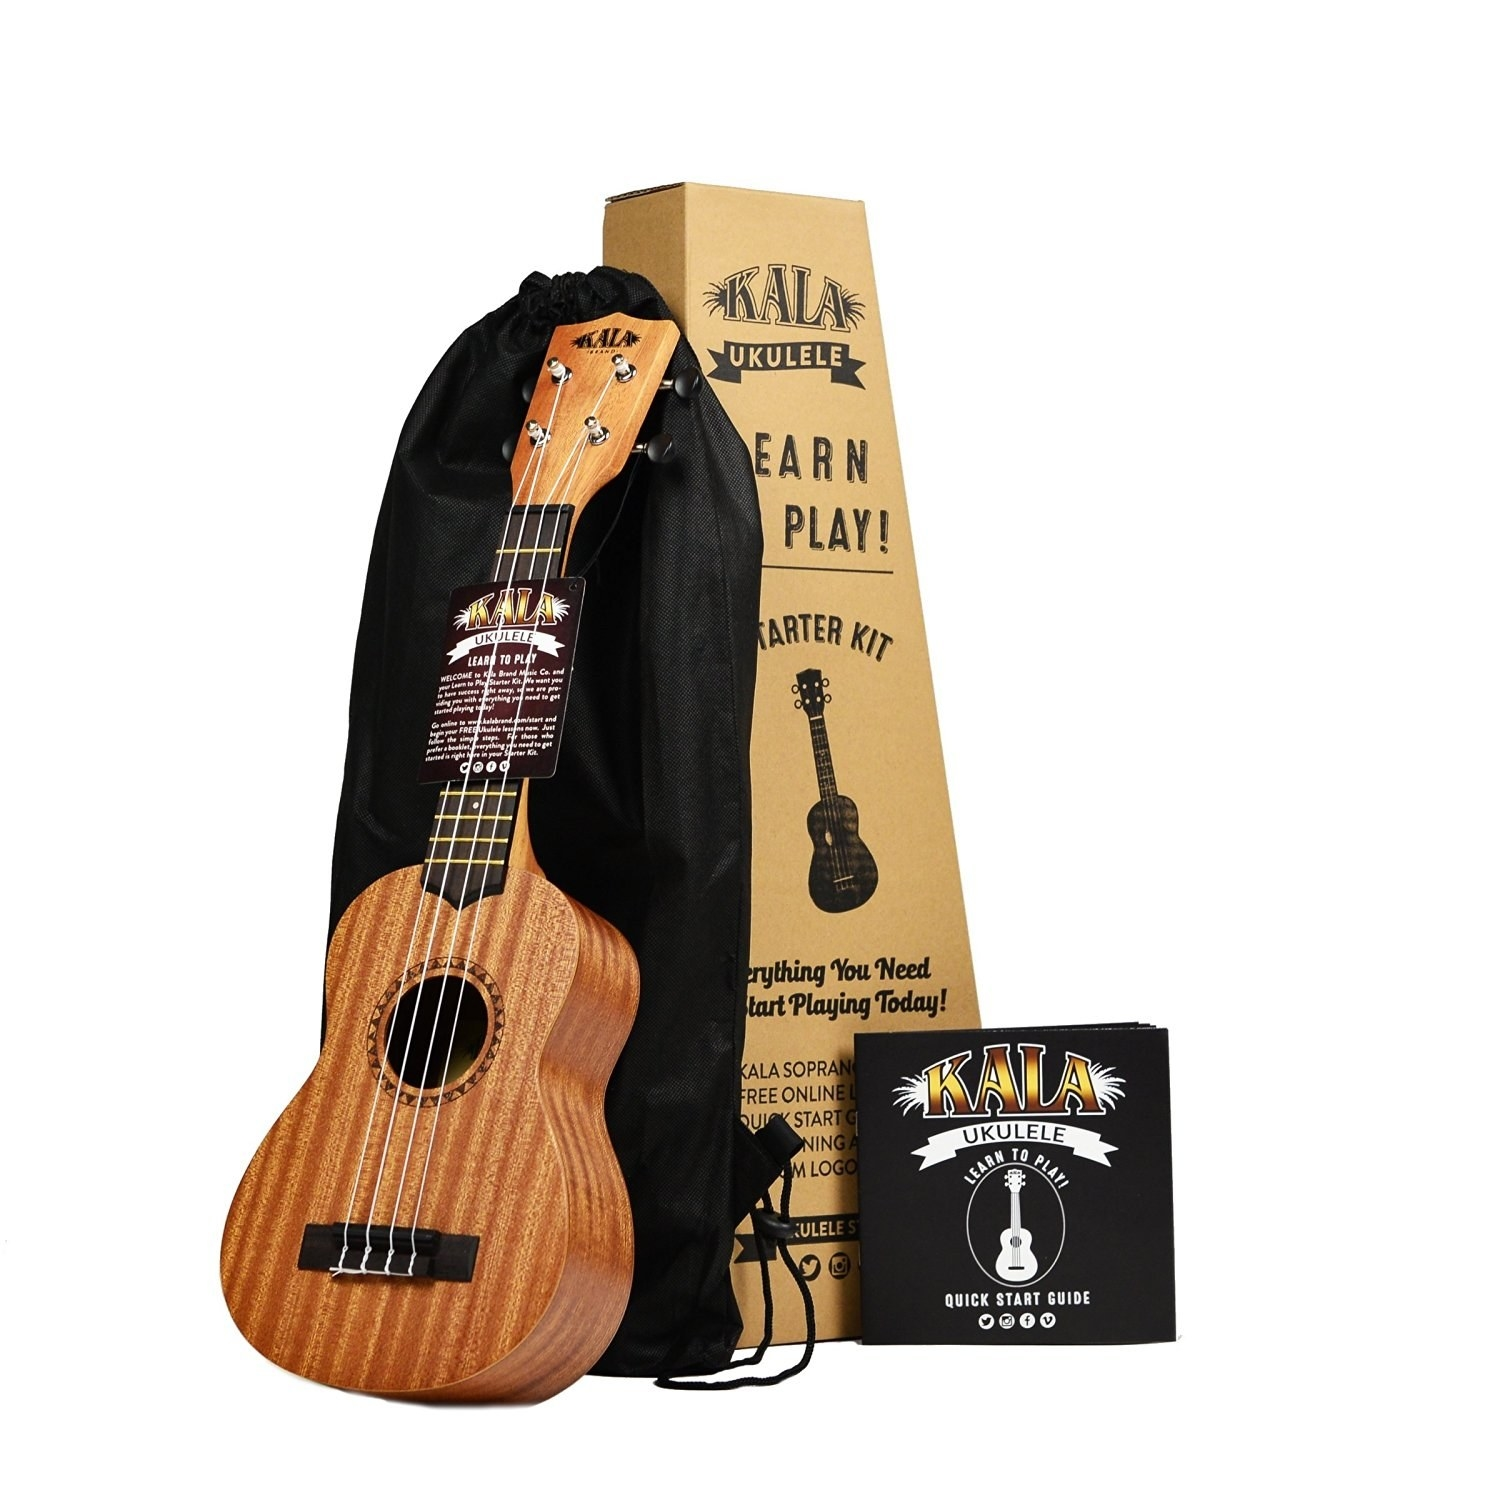 An awesome ukulele starter kit that comes with a Kala ukulele, tote bag,  and helpful playing guide.